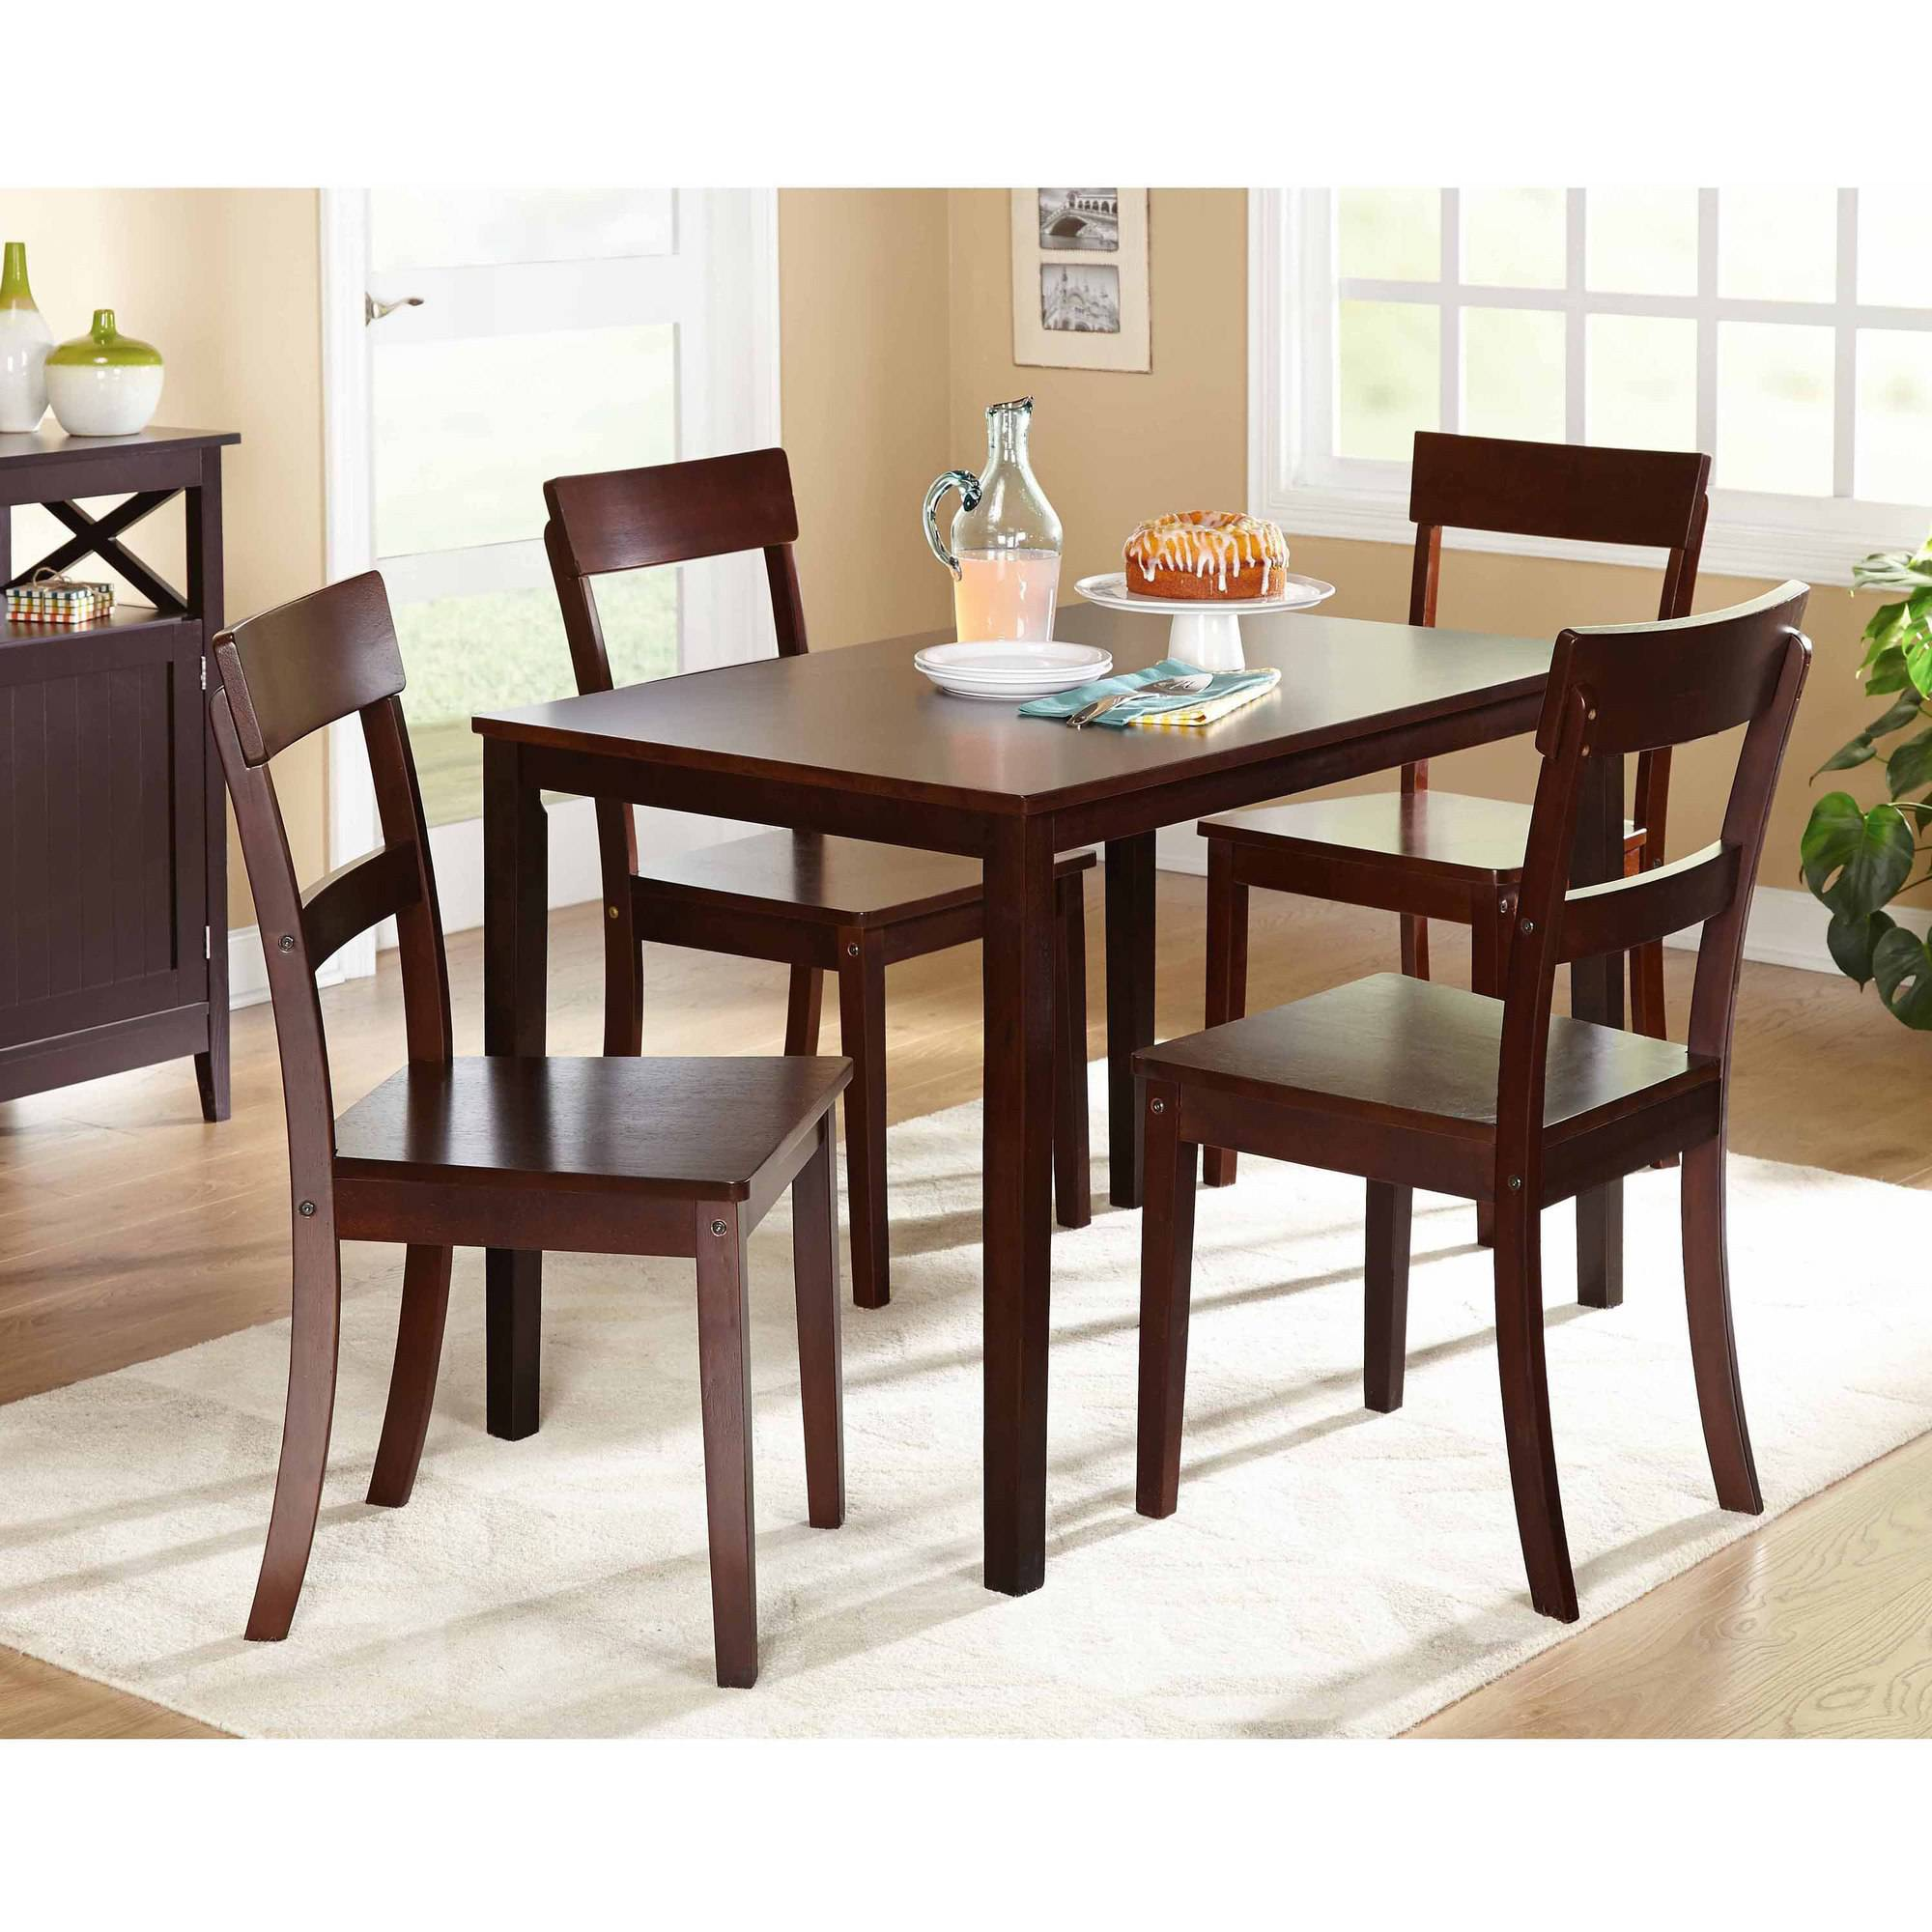 Beverly 5 Piece Dining Set Multiple Finishes